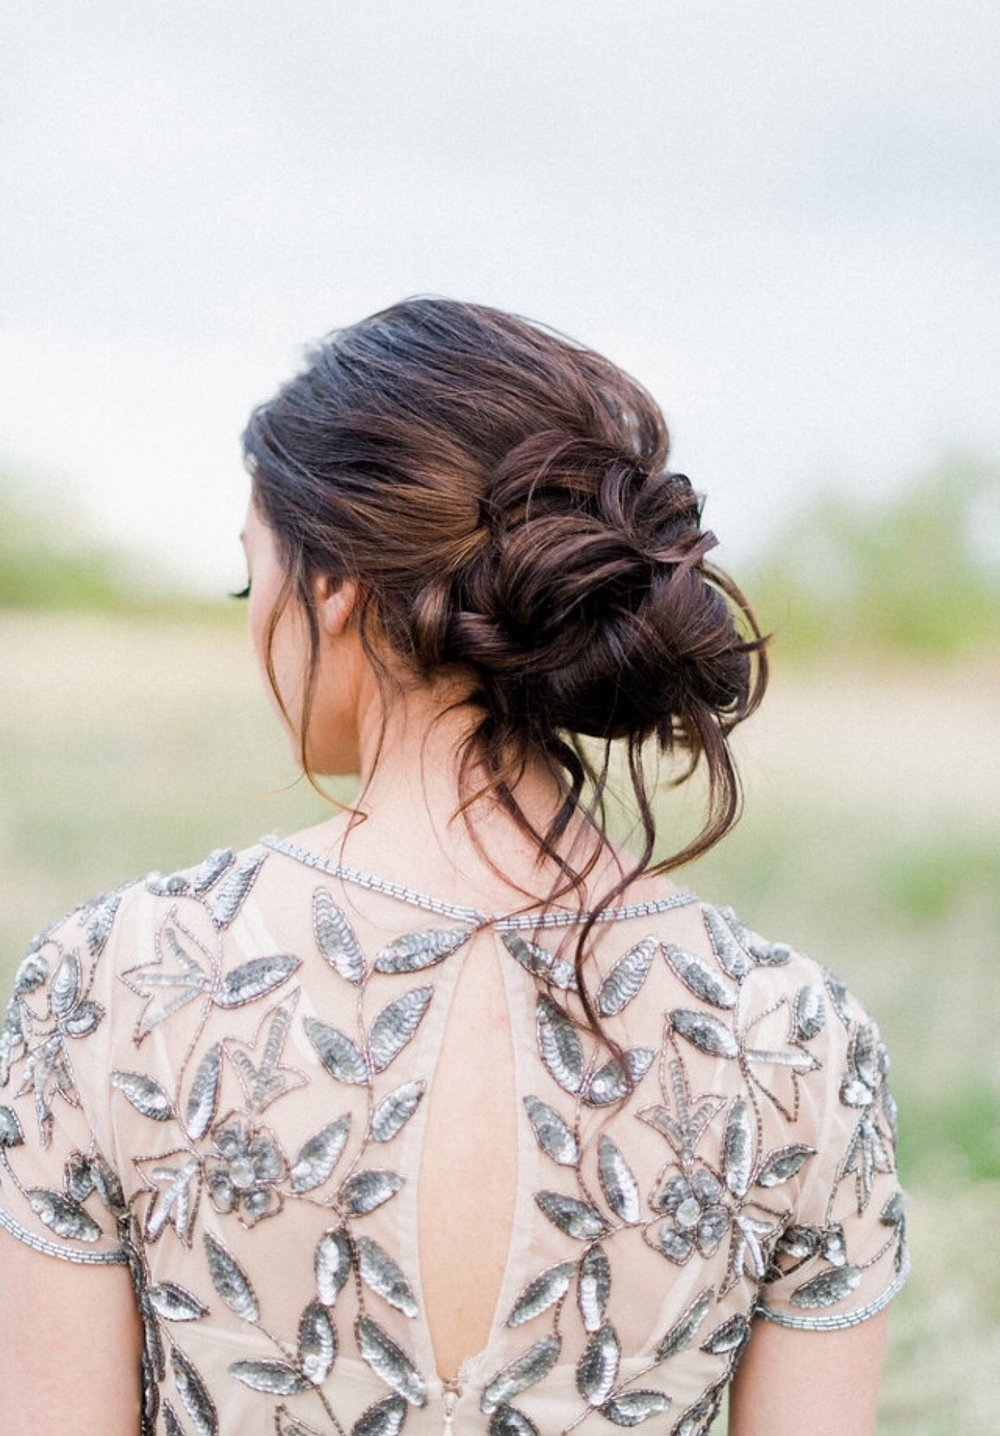 Denver-wedding-hair-wedding-hairstylist-traveling-updo-artist